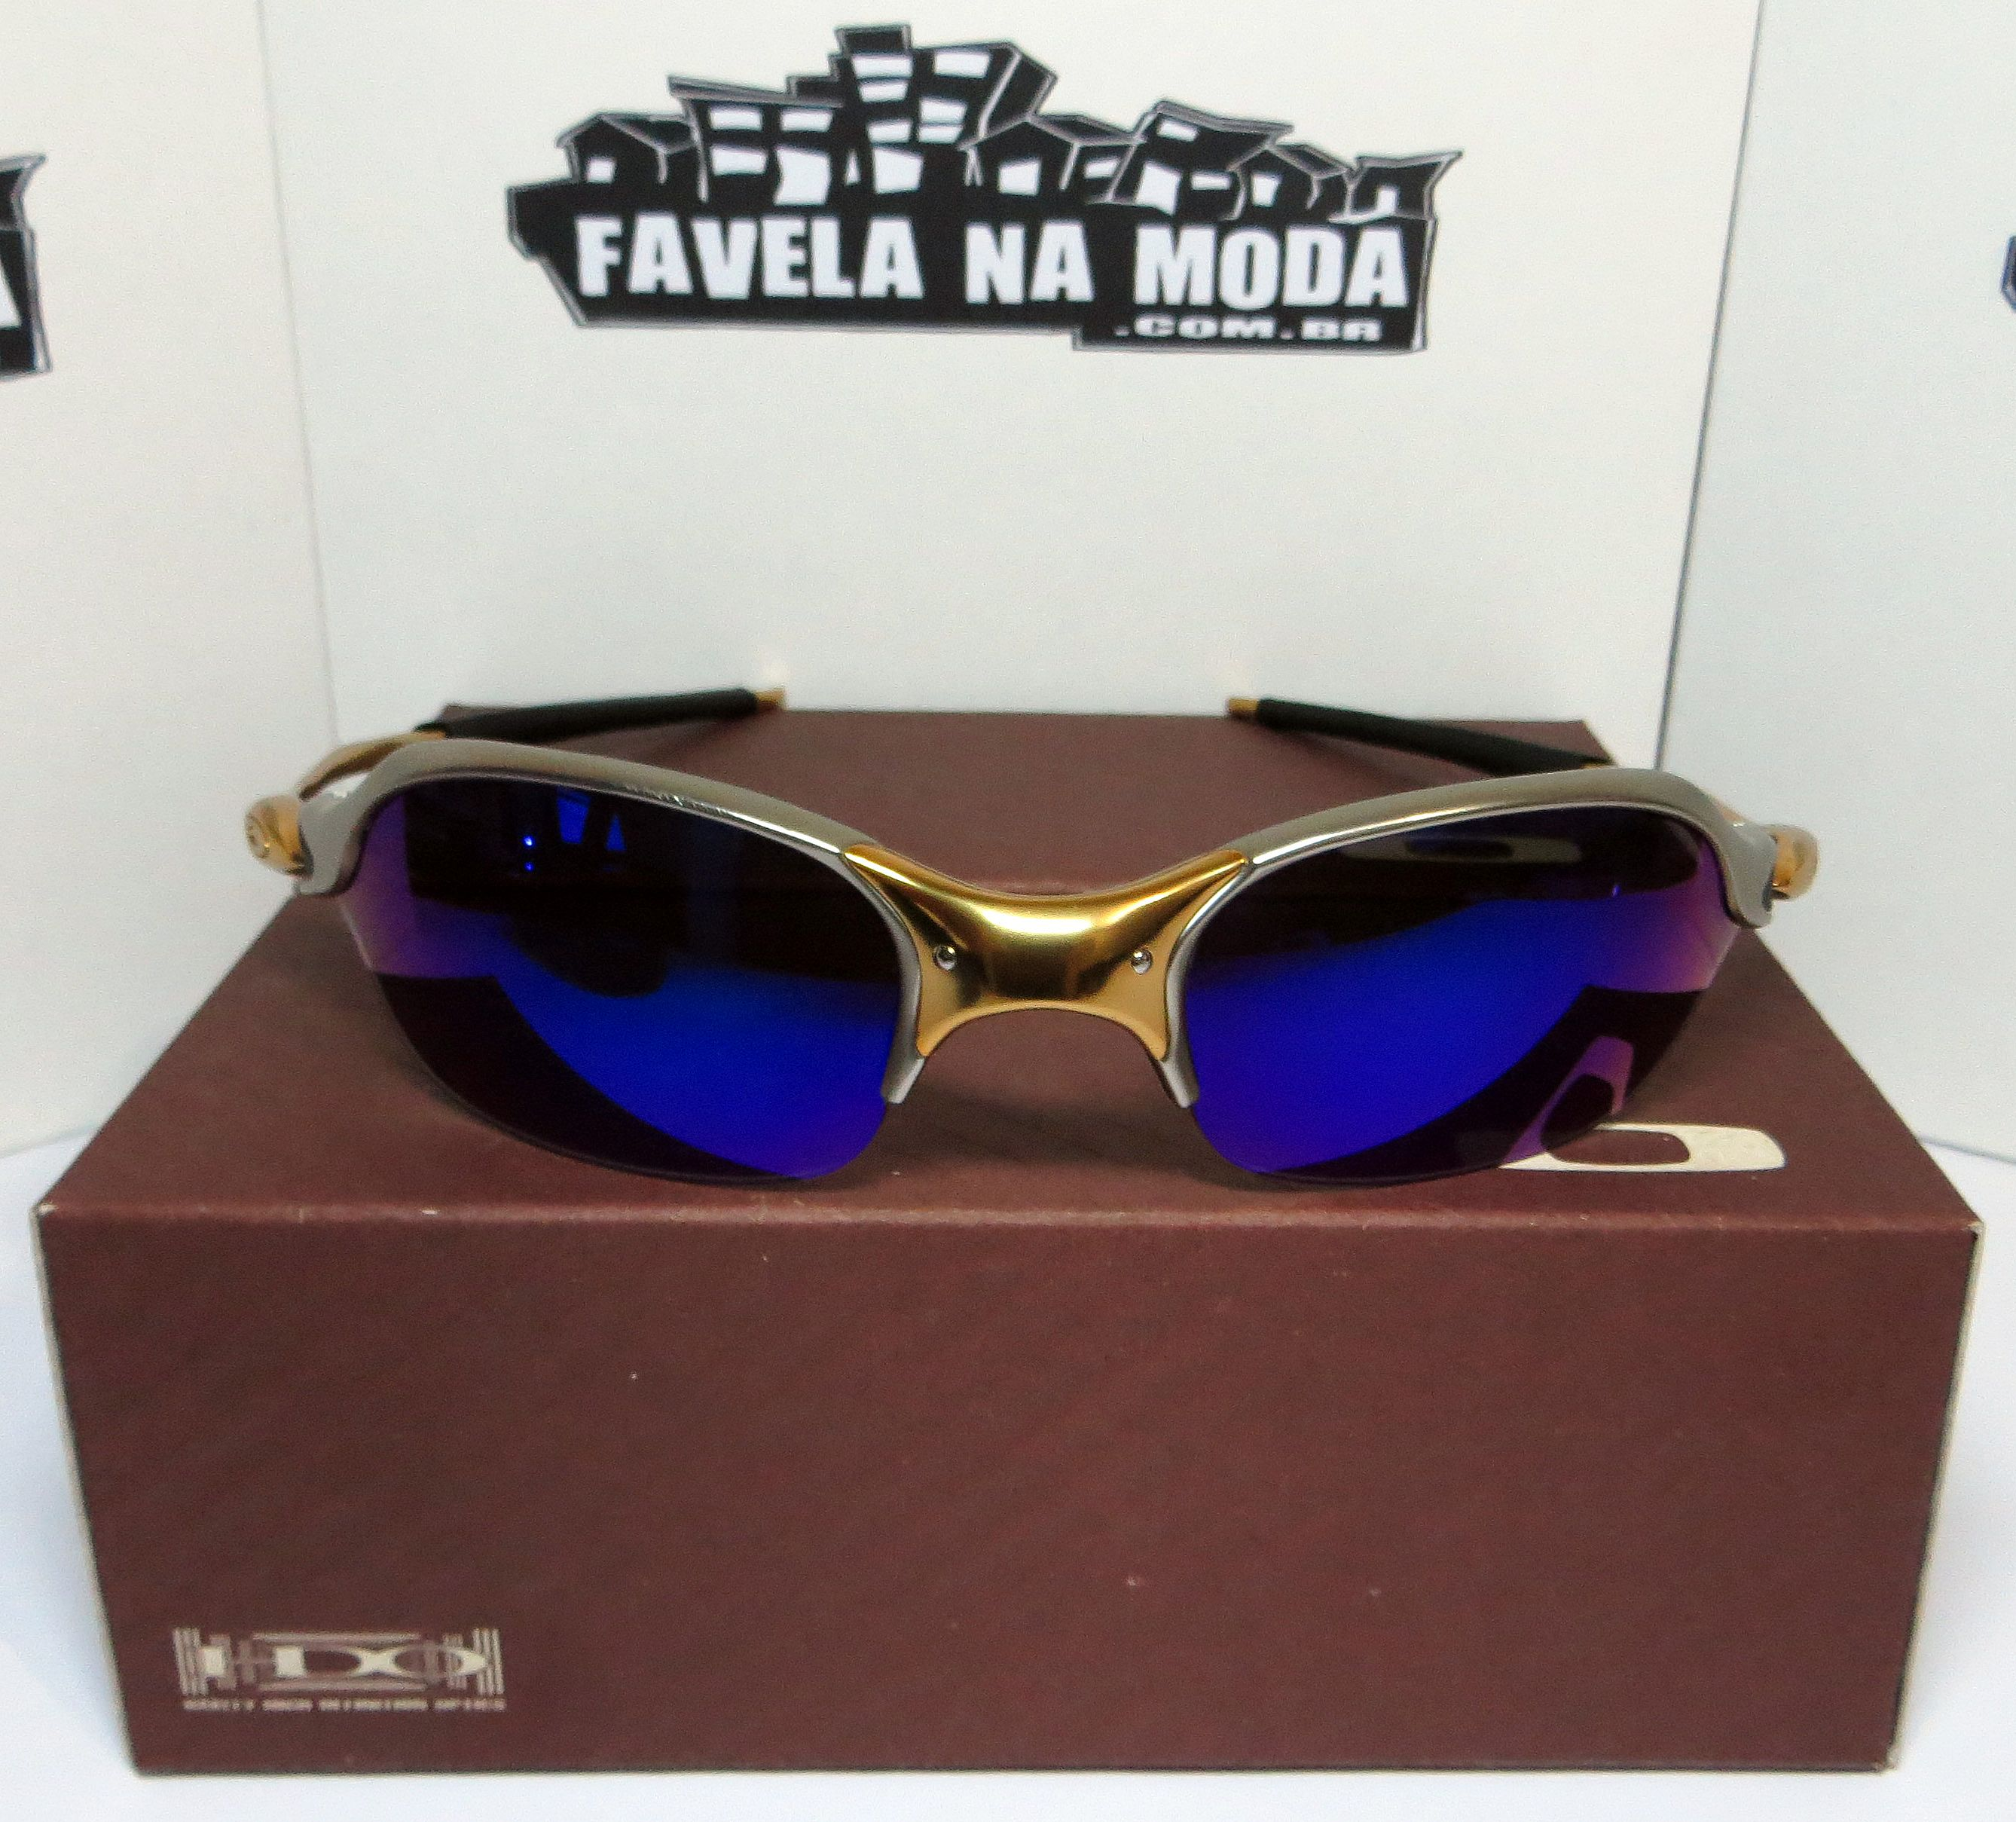 86e9fe6c5 Óculos Oakley Romeo 2 - 24k / Magic Blue / Borrachas Pretas